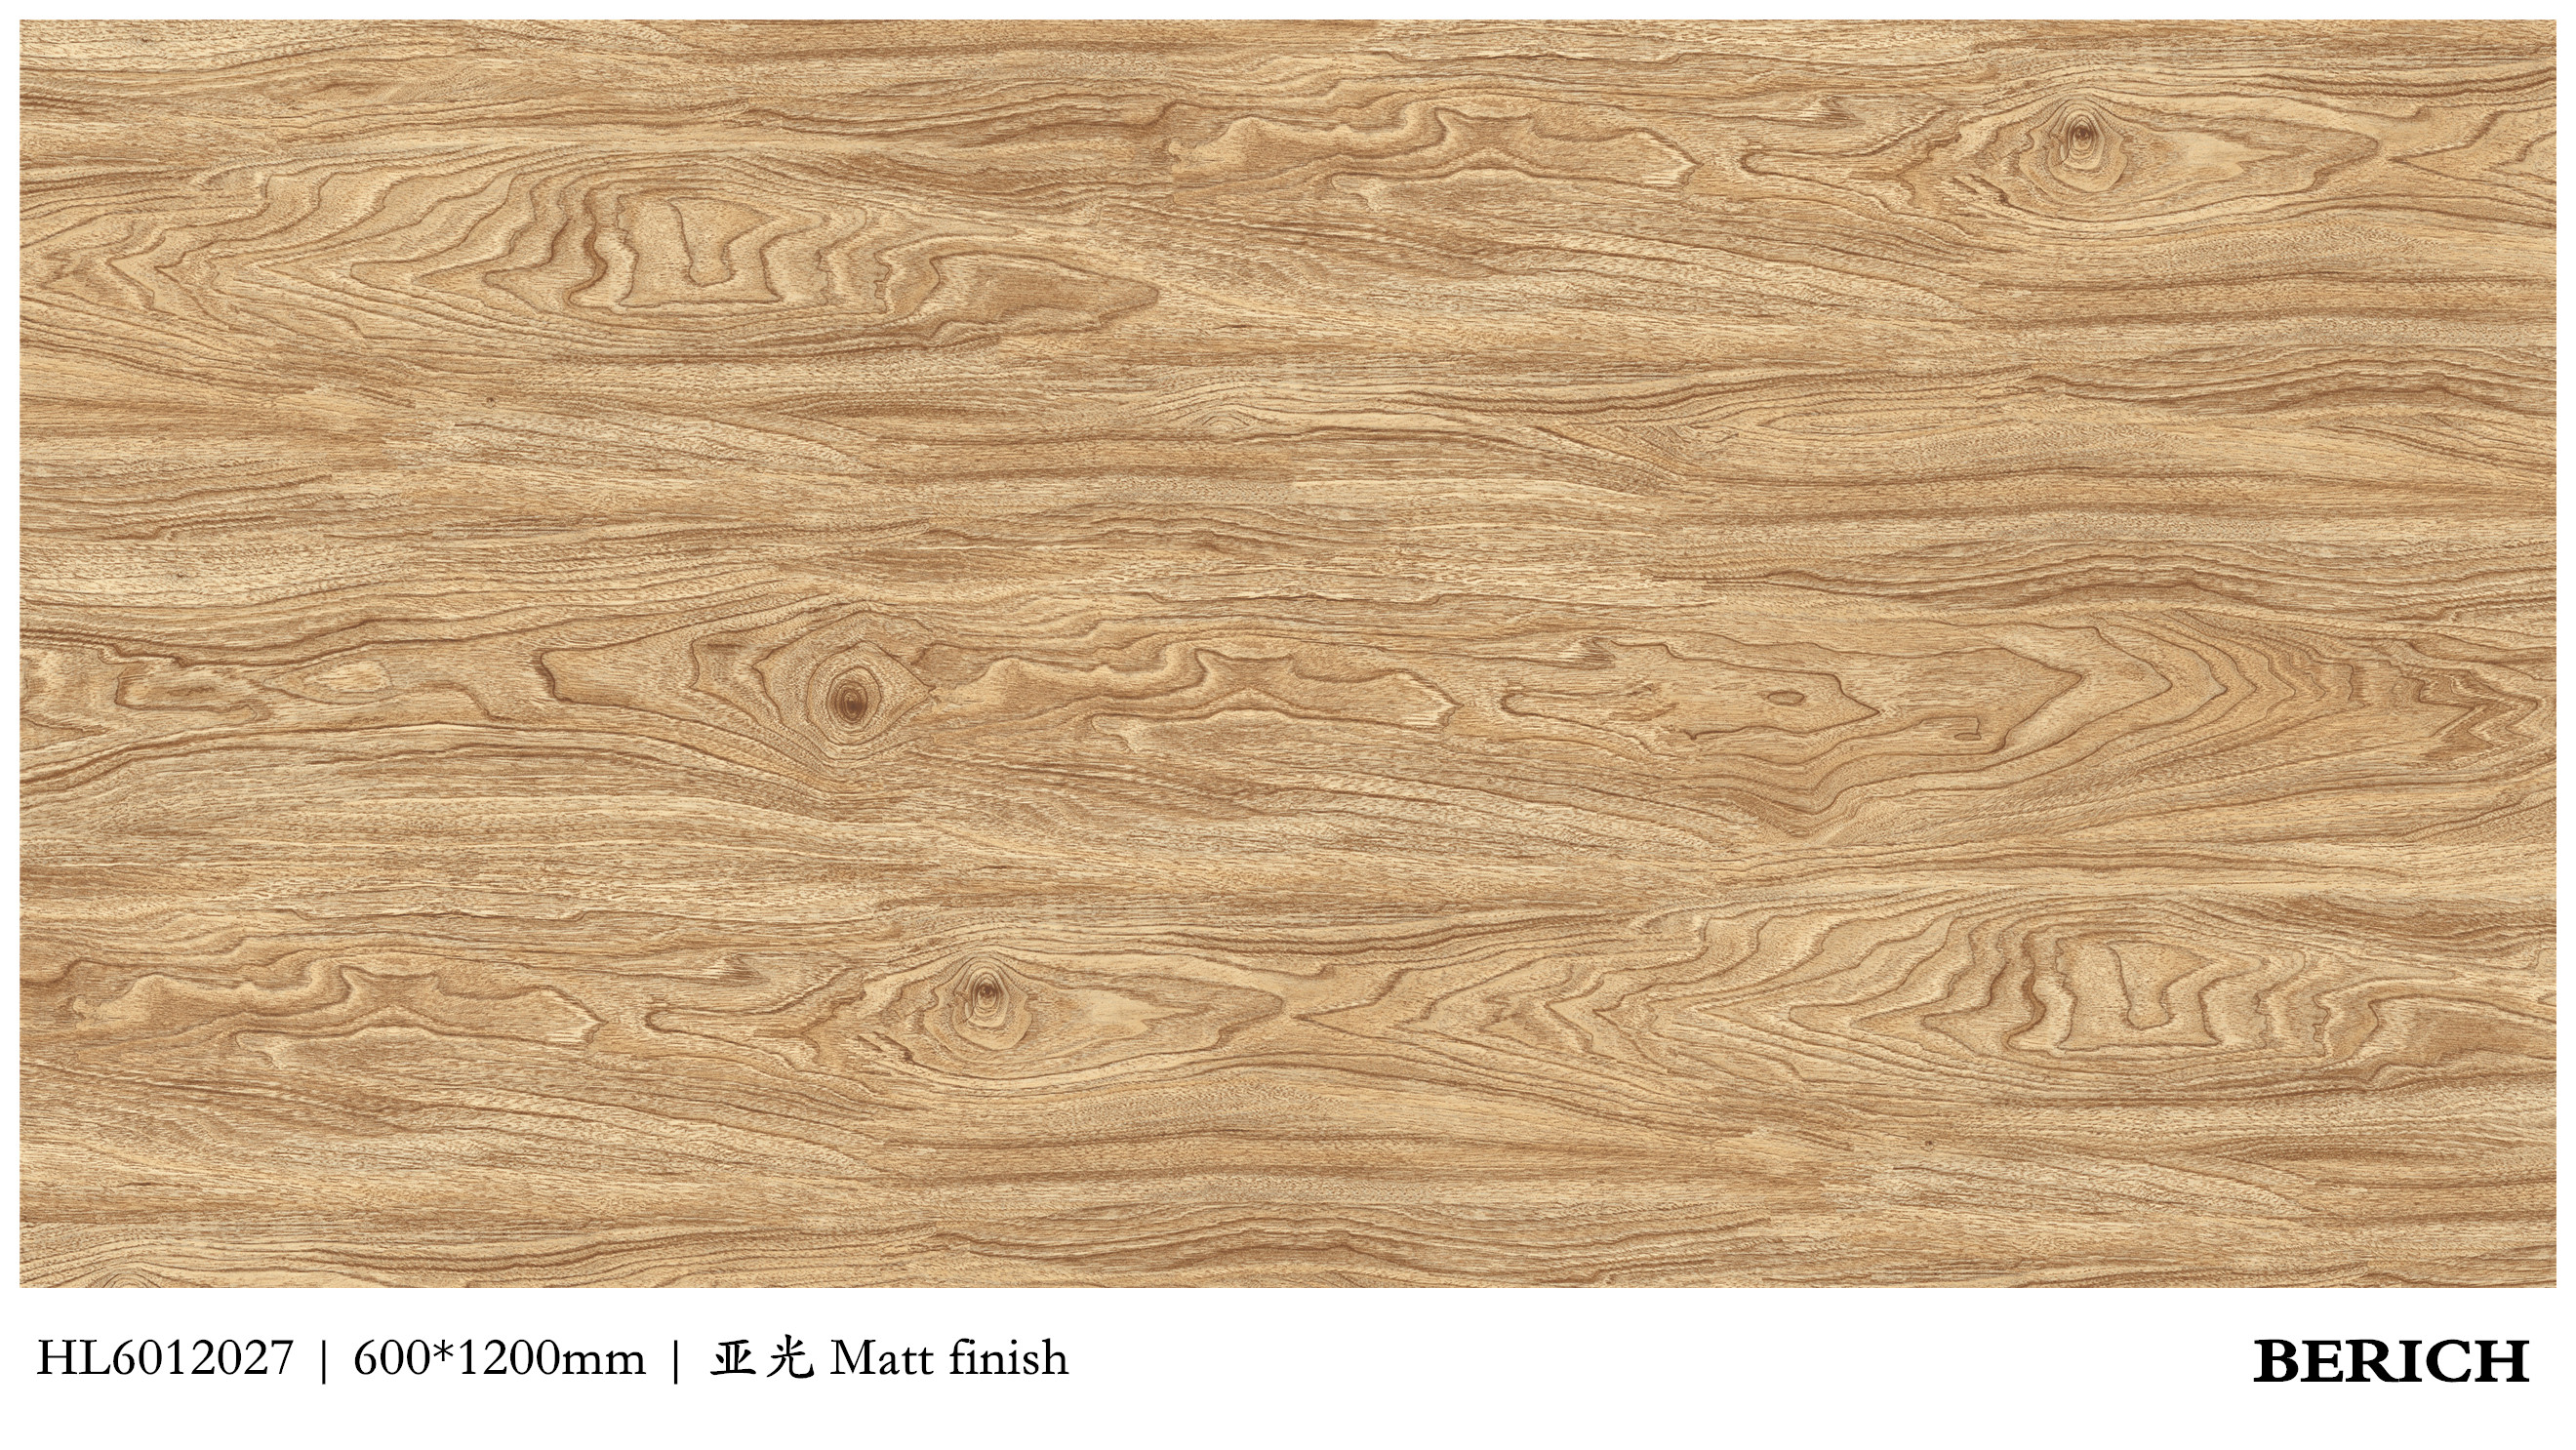 Berich glazed wood texture design porcelain tile